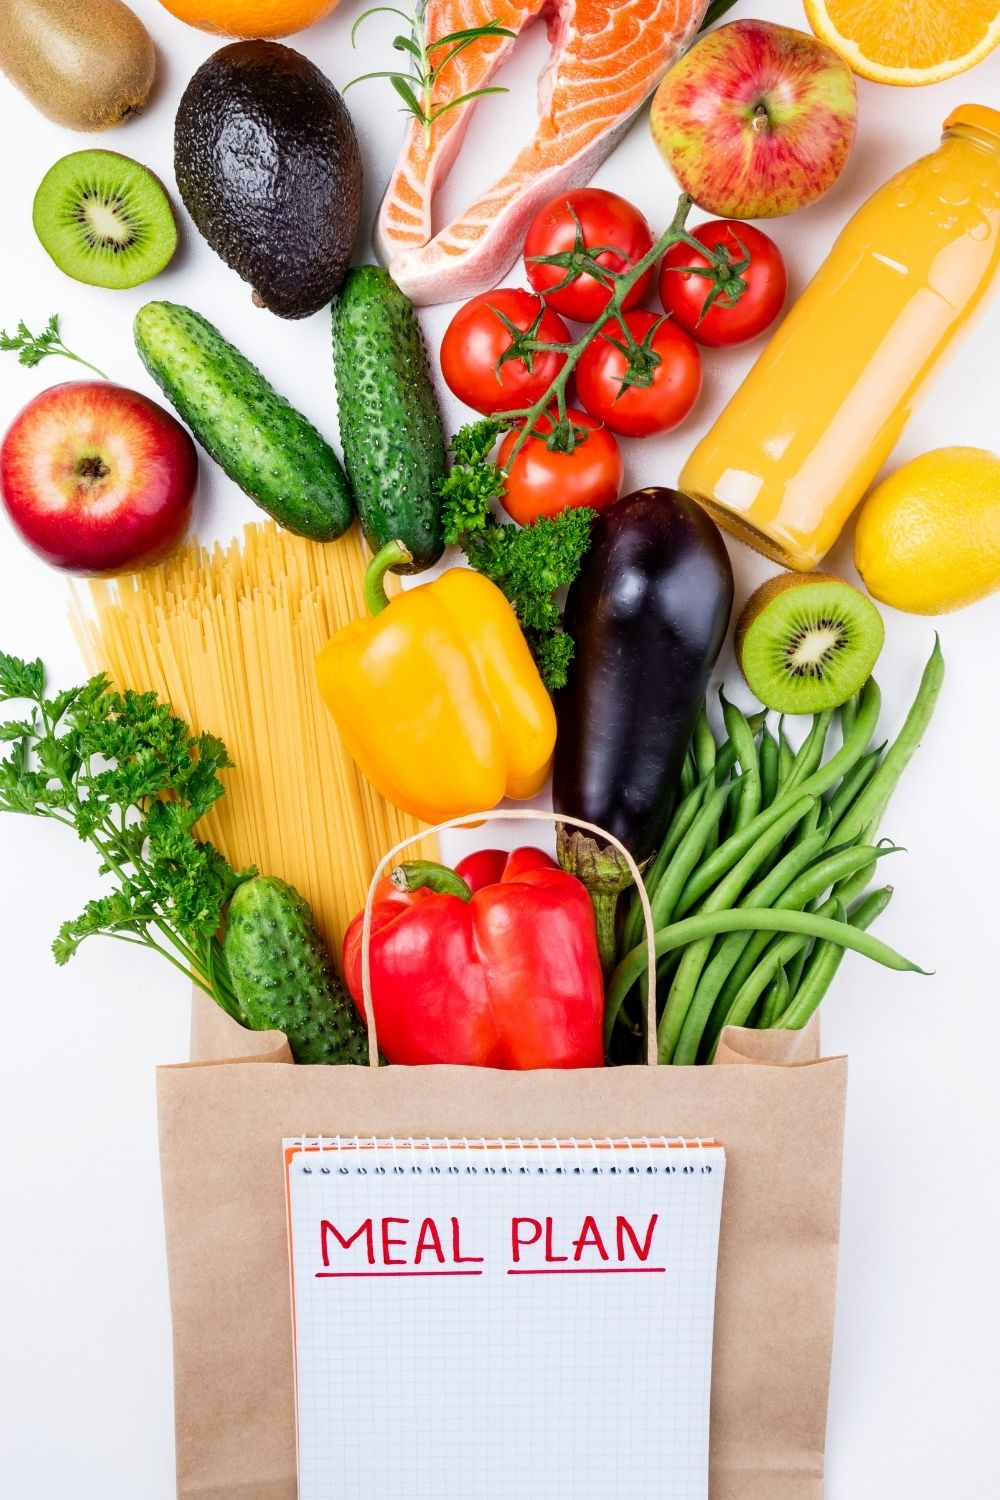 Grocery bag full of food for easy meal plans for two.